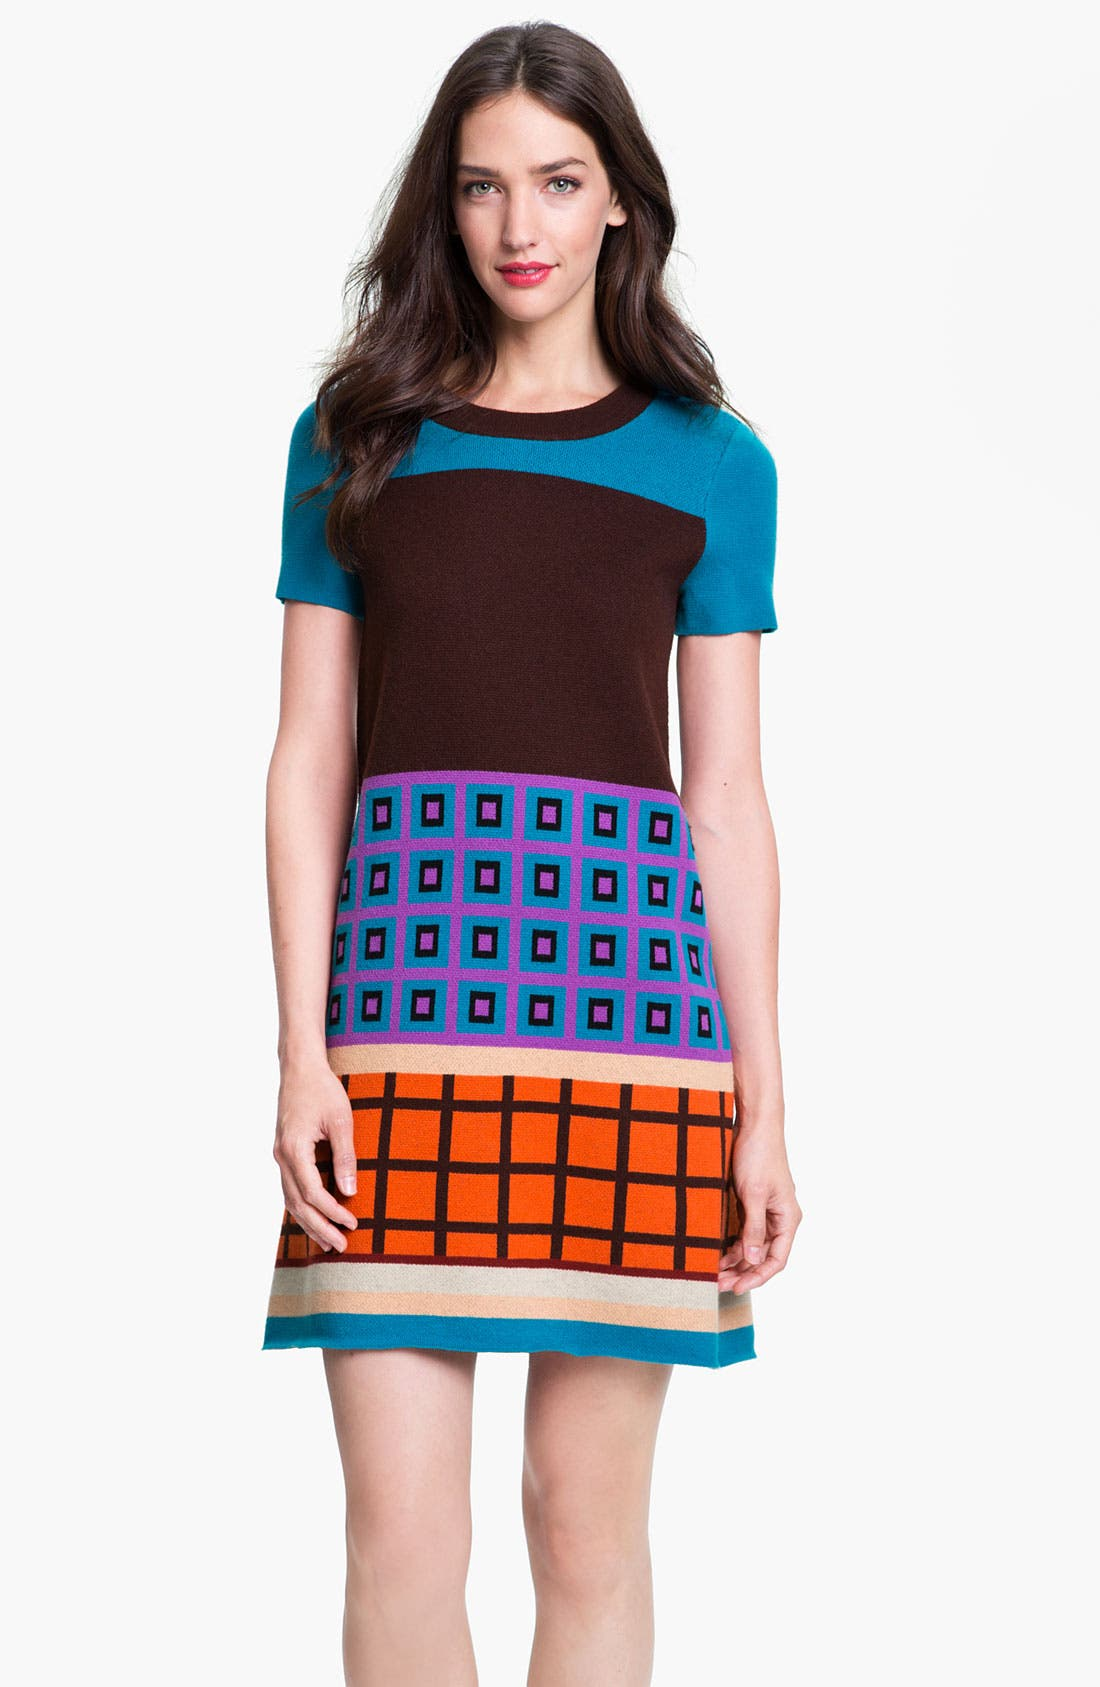 Alternate Image 1 Selected - kate spade new york 'freyda' wool blend sweater shift dress